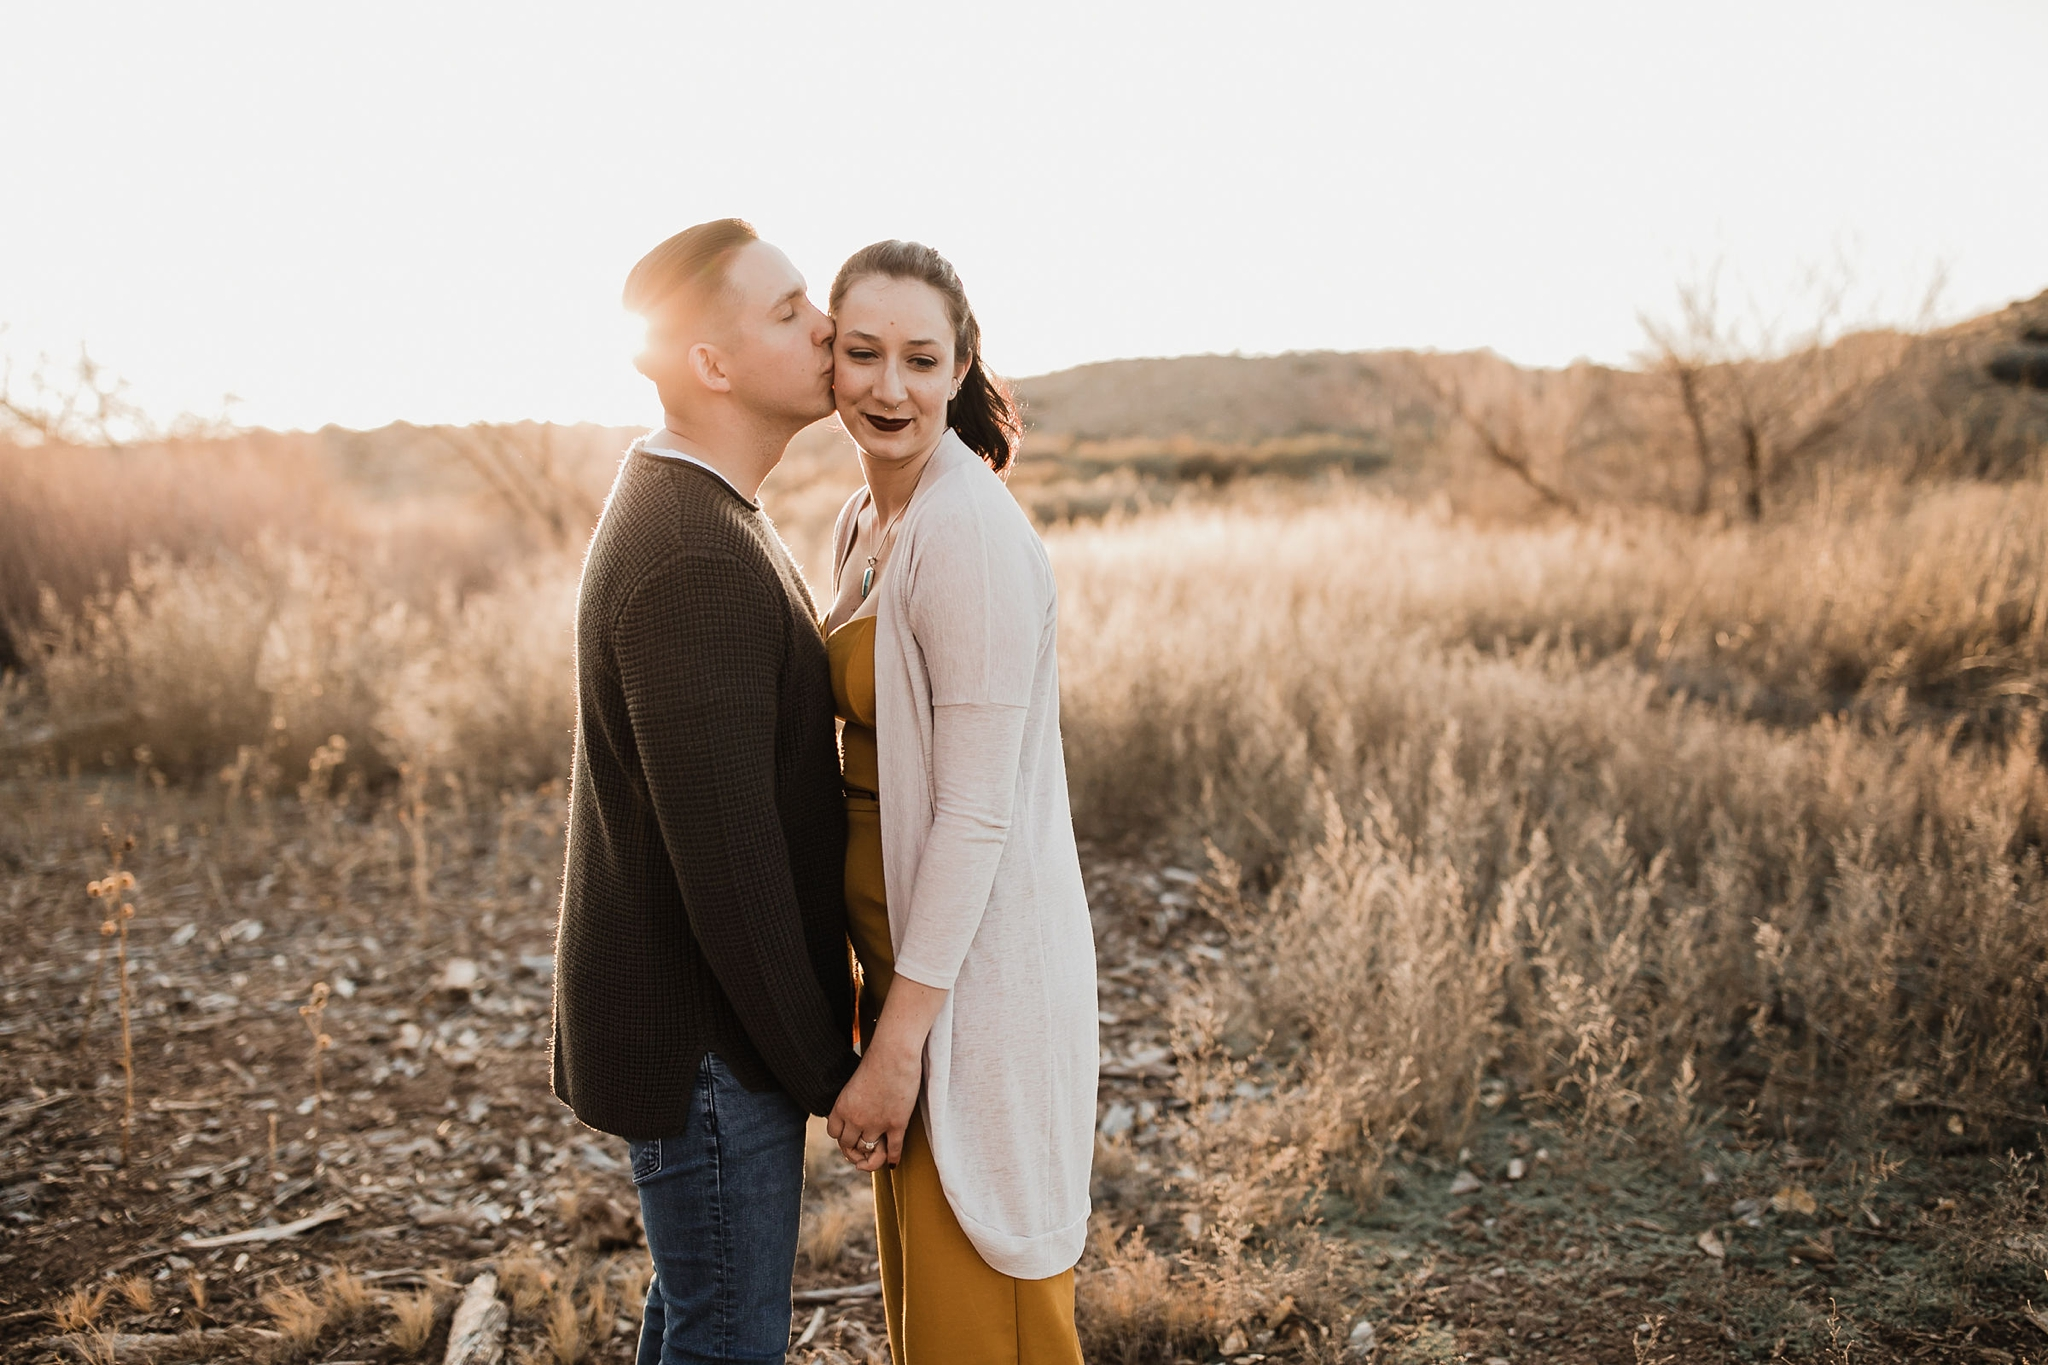 Alicia+lucia+photography+-+albuquerque+wedding+photographer+-+santa+fe+wedding+photography+-+new+mexico+wedding+photographer+-+new+mexico+wedding+-+engagement+-+new+mexico+engagemnt+-+outdoor+engagement_0004.jpg